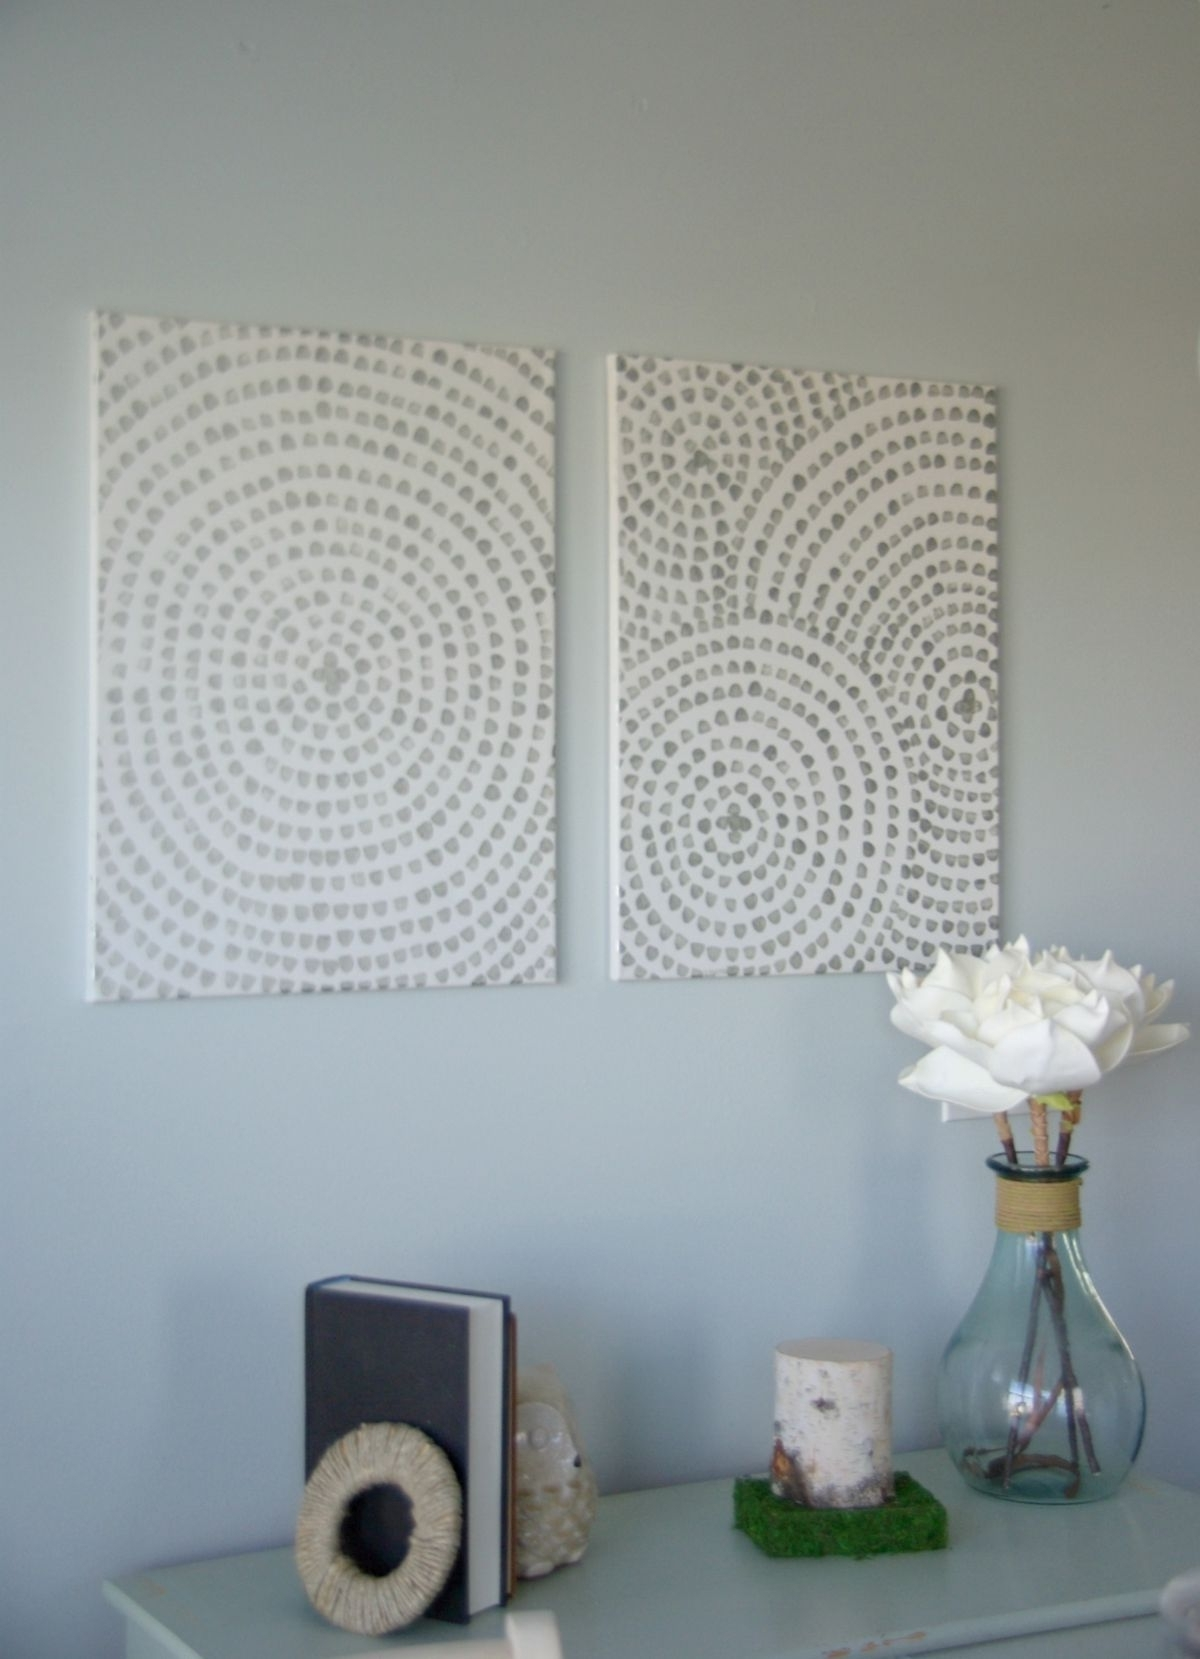 Diy Canvas Wall Art – A Low Cost Way To Add Art To Your Home (Gallery 9 of 15)